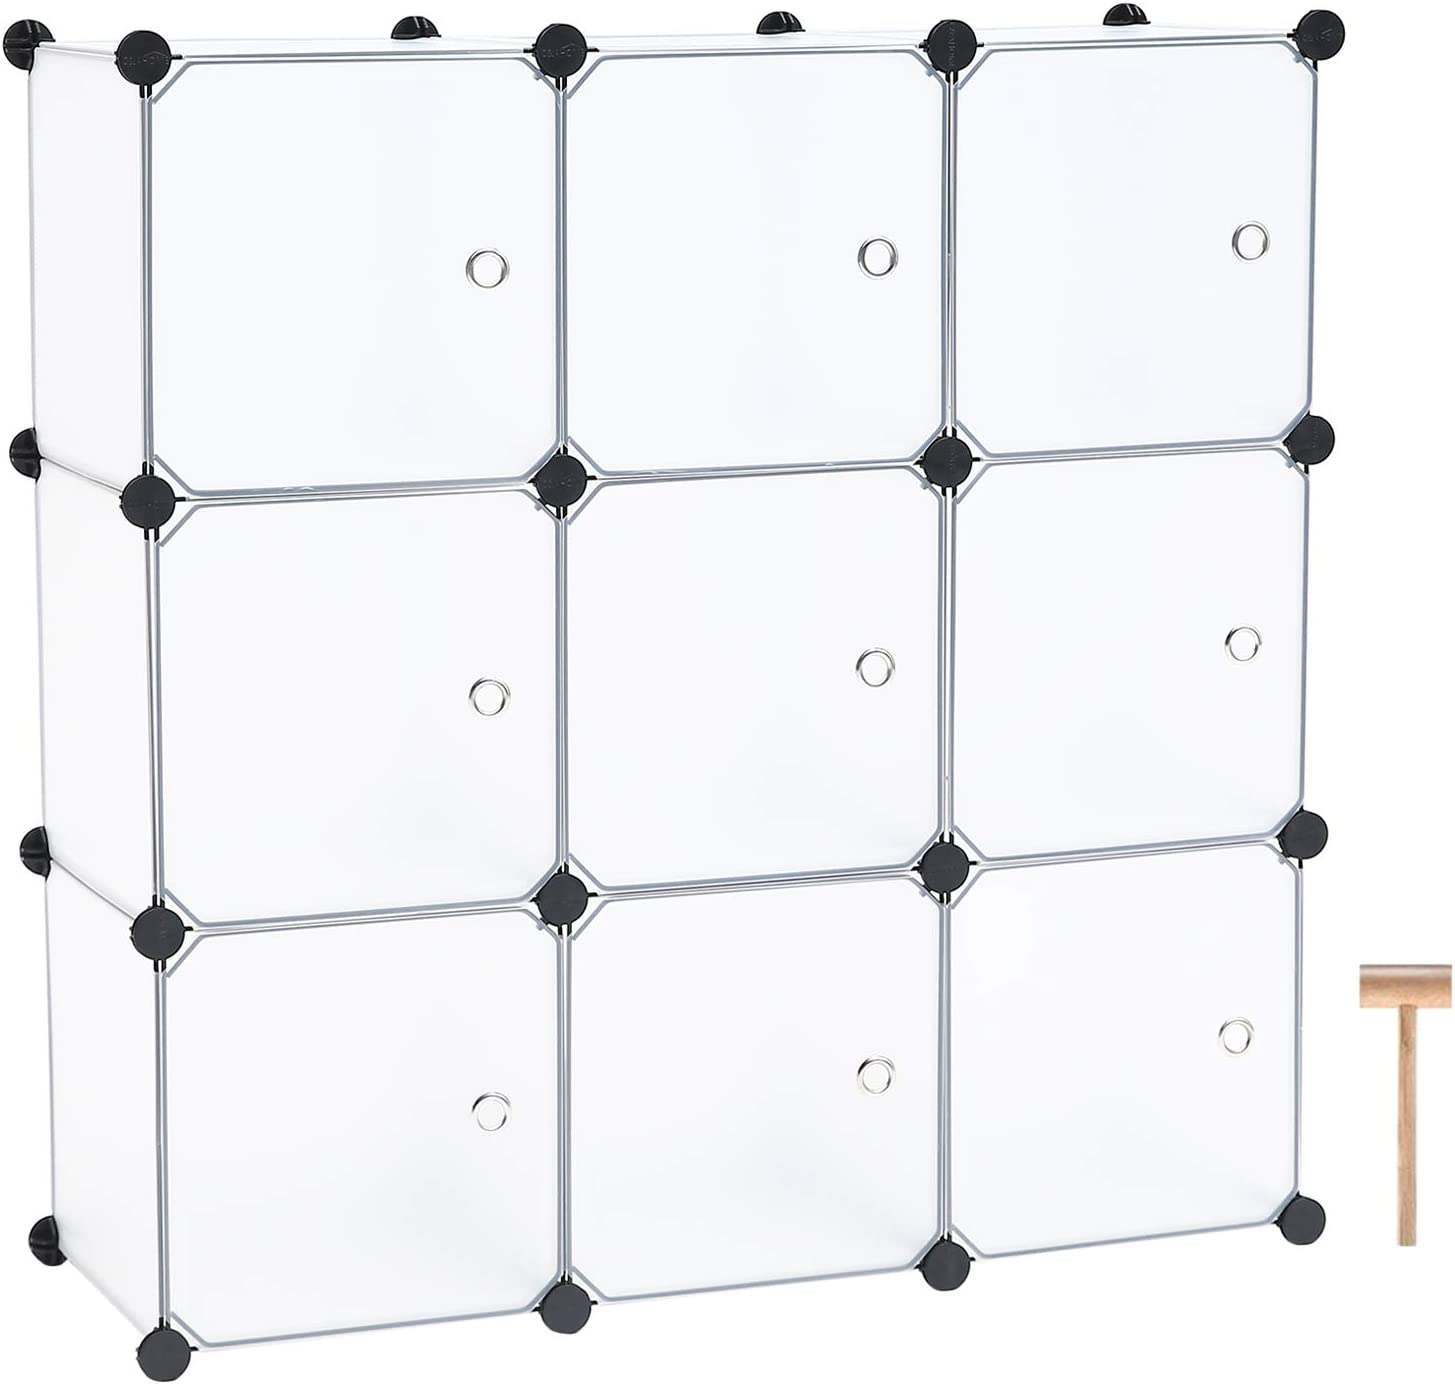 "C&AHOME Cube Storage Organizer, 9-Cube Plastic Closet Cabinet, Modular Bookshelf Units, Storage Shelves with Doors Ideal for Bedroom Living Room Office 36.6""L x 12.4""W x 36.6""H Translucent White"